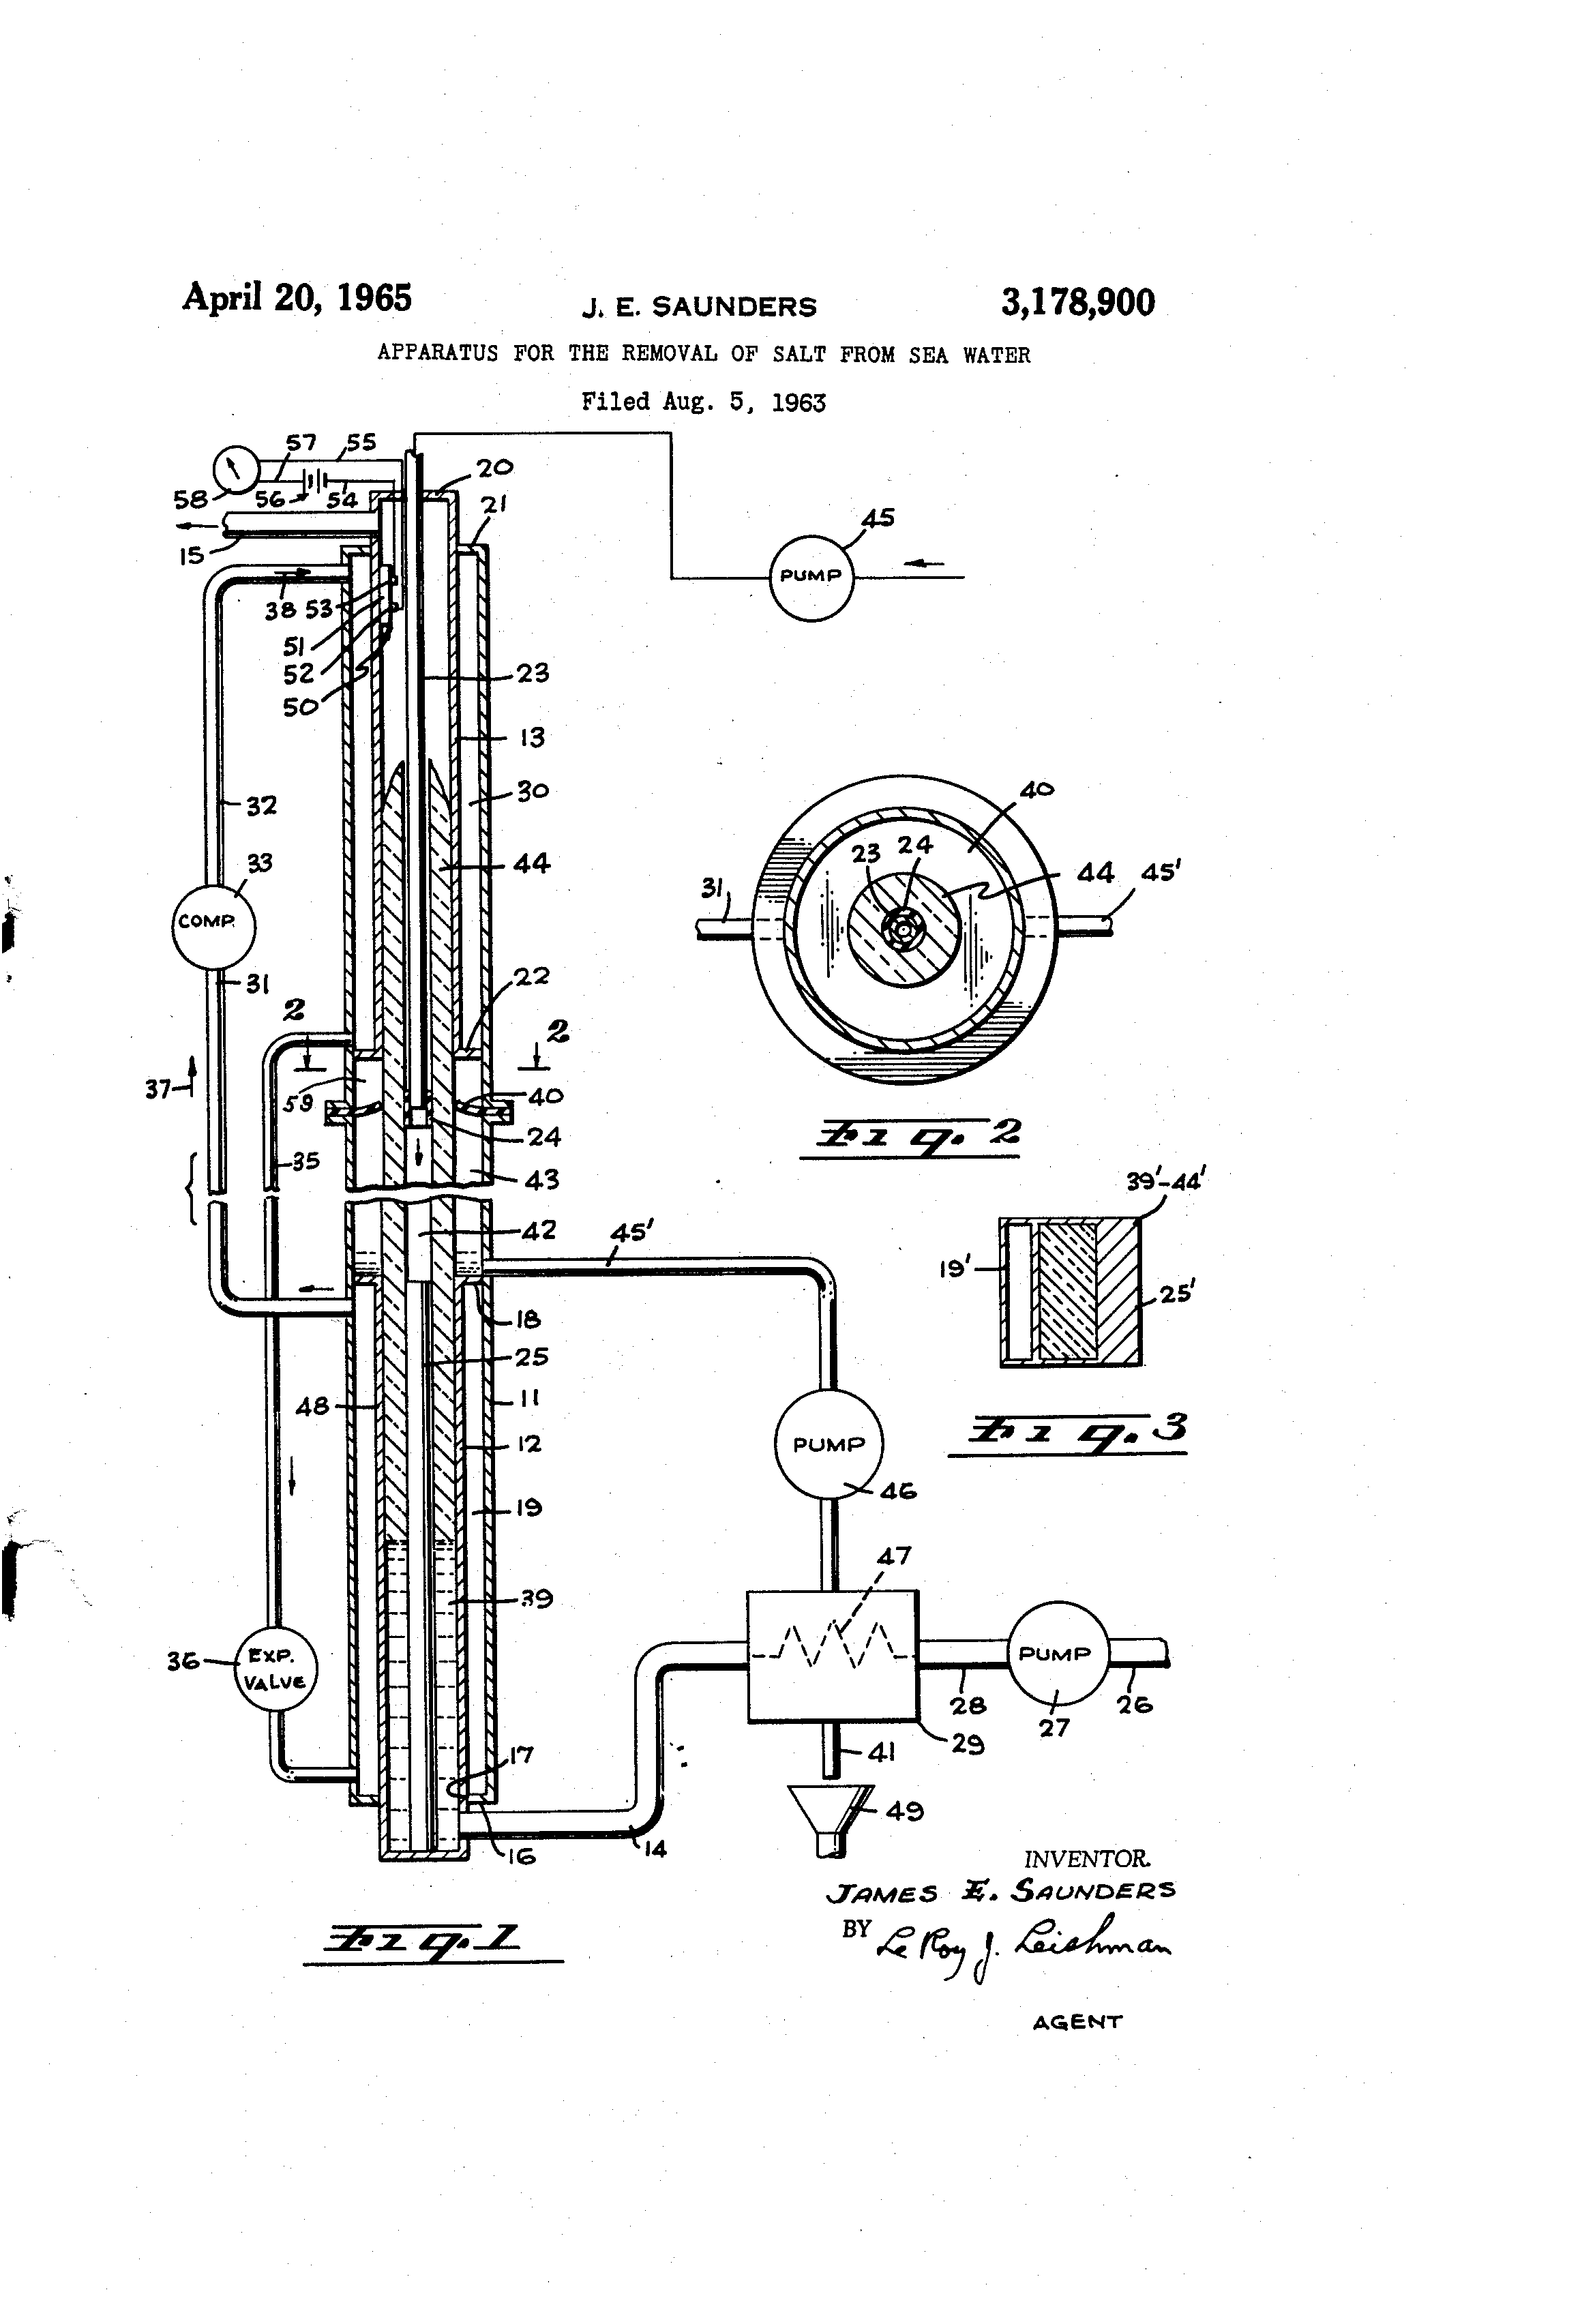 Patente US Apparatus for the removal of salt from sea